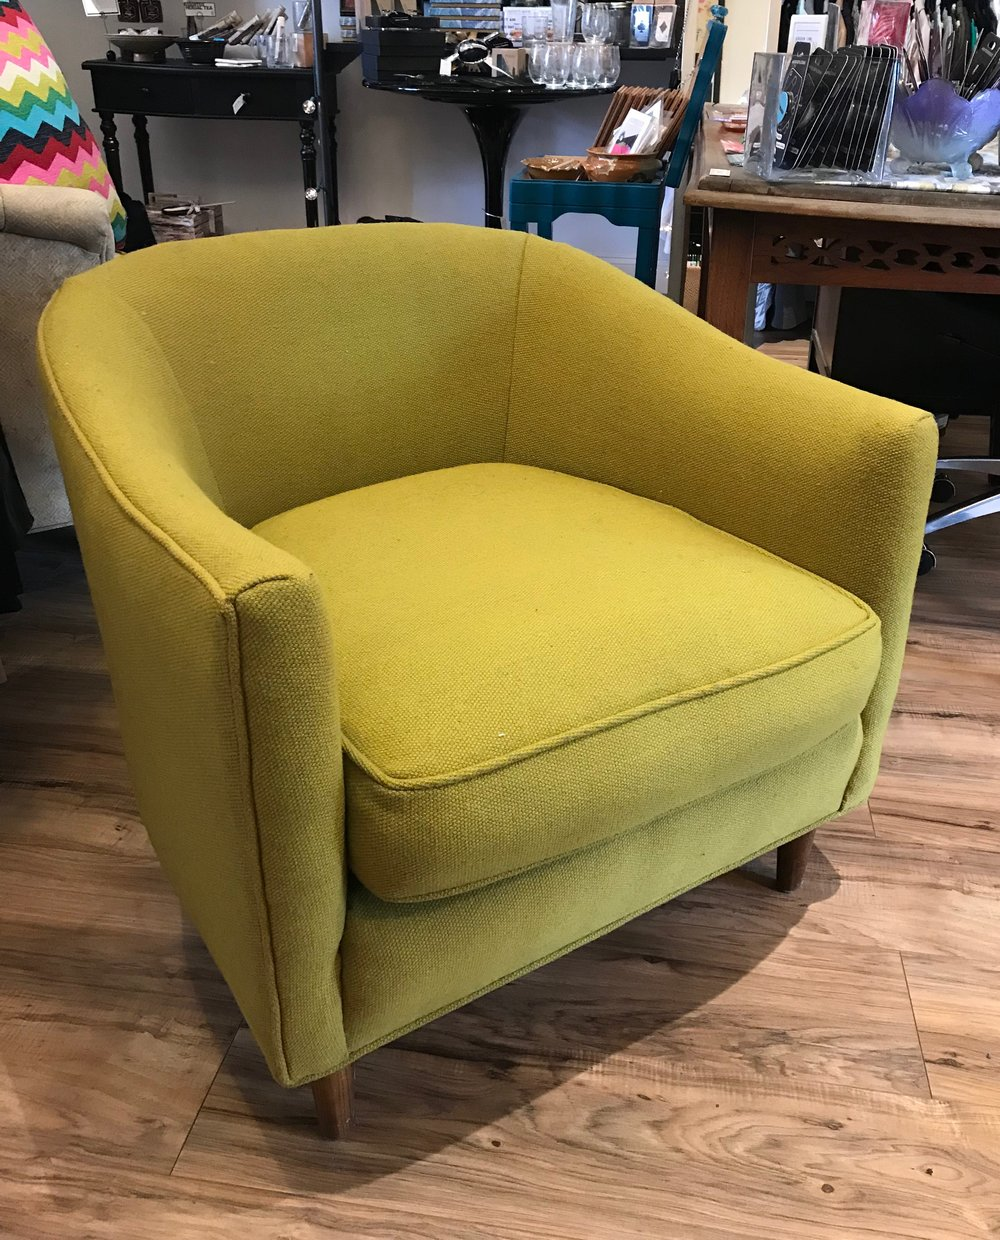 Green Owl Design - We love this chair and its price! Seriously, need a comfy gift for that lounger (us) in your life? Get to Green Owl fast and snag this beauty before it's gone! $125